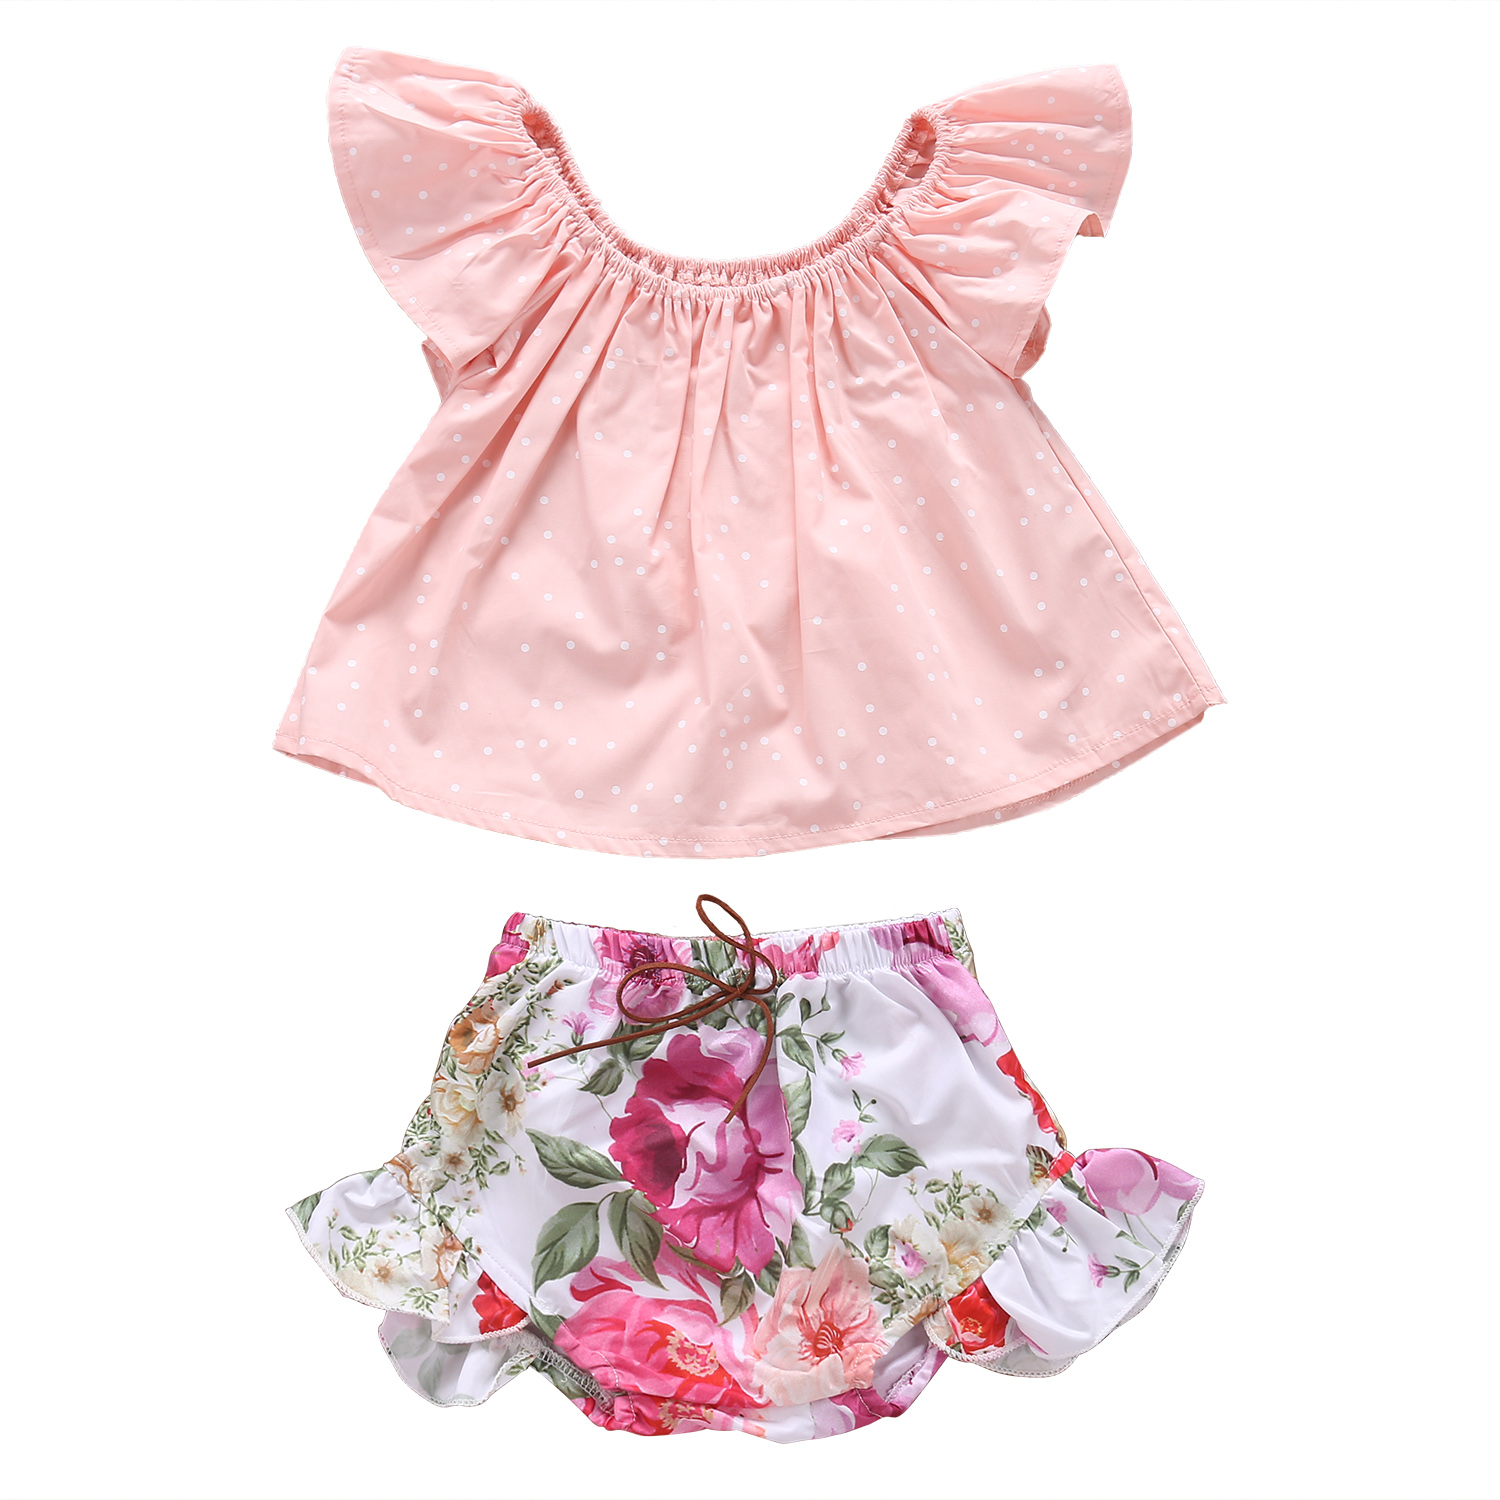 Cute Newborn Toddler Baby Girl Clothing Flower Bow Cute Clothes Lace